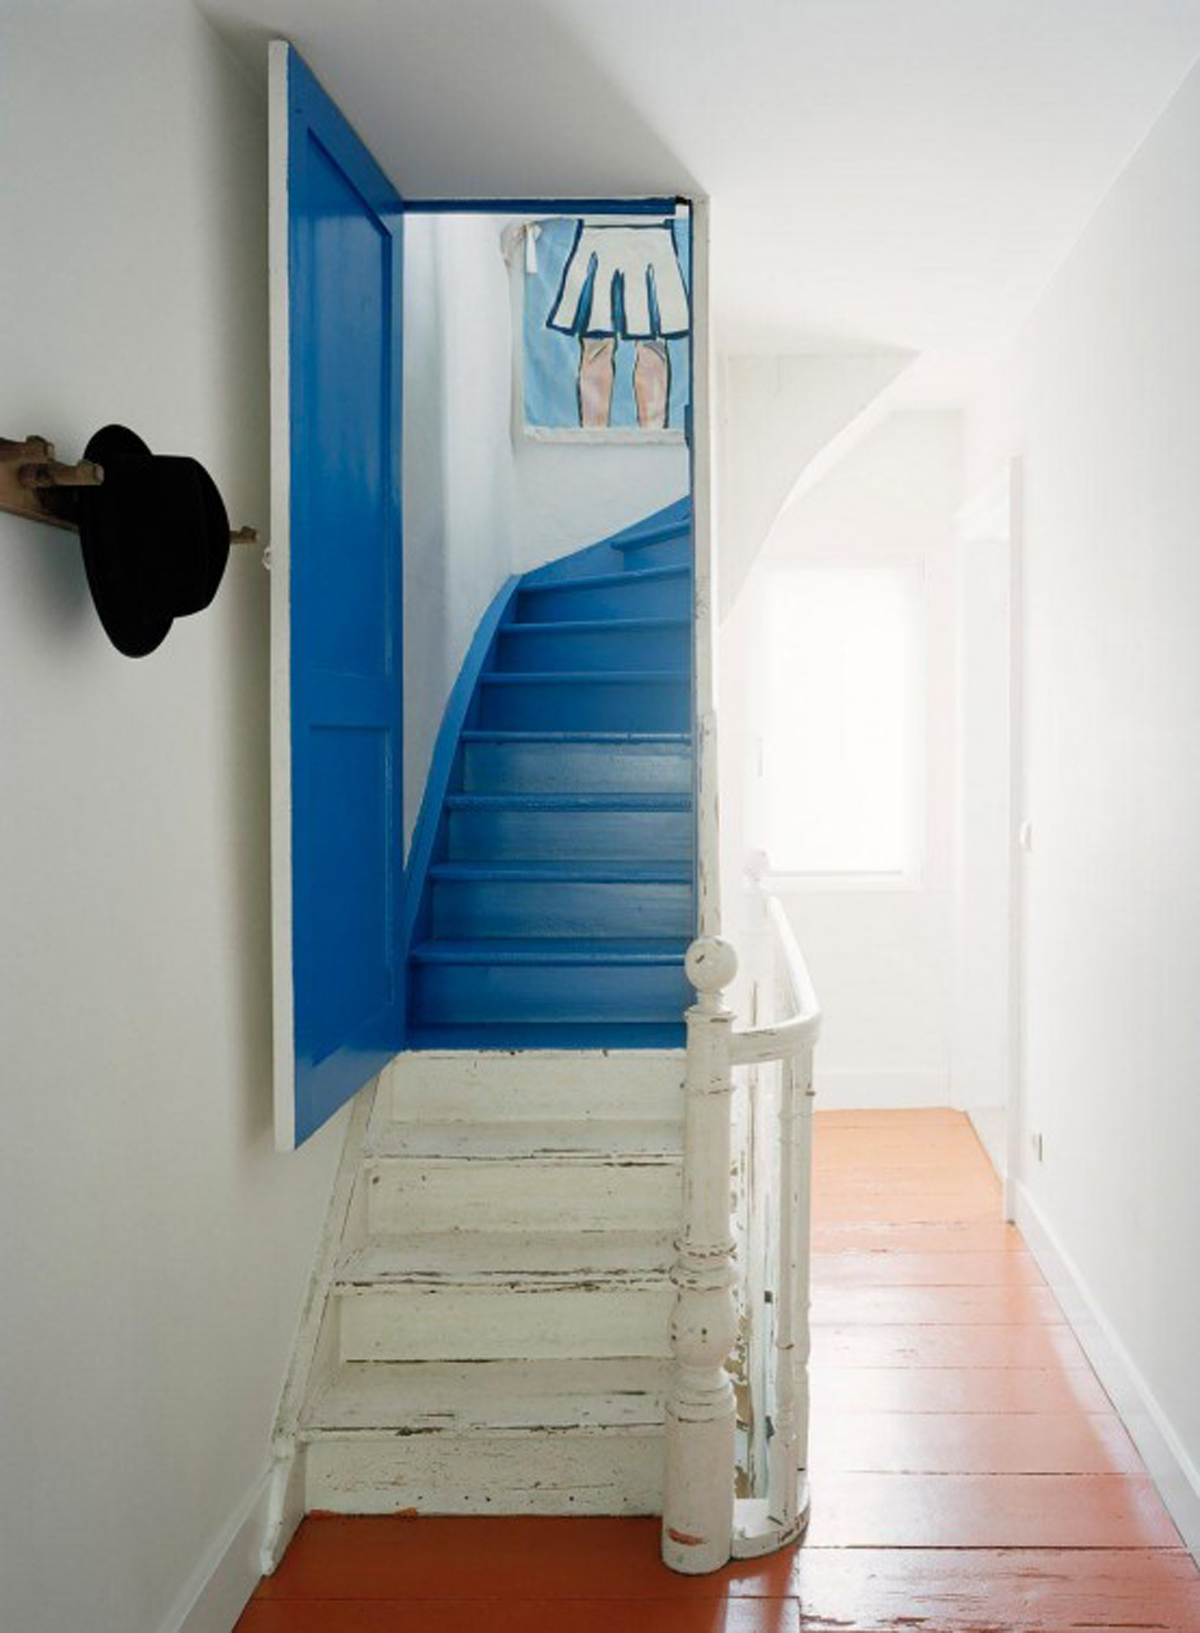 Half Parts of Old House Renovated into Modern Style Architecture - Staircase